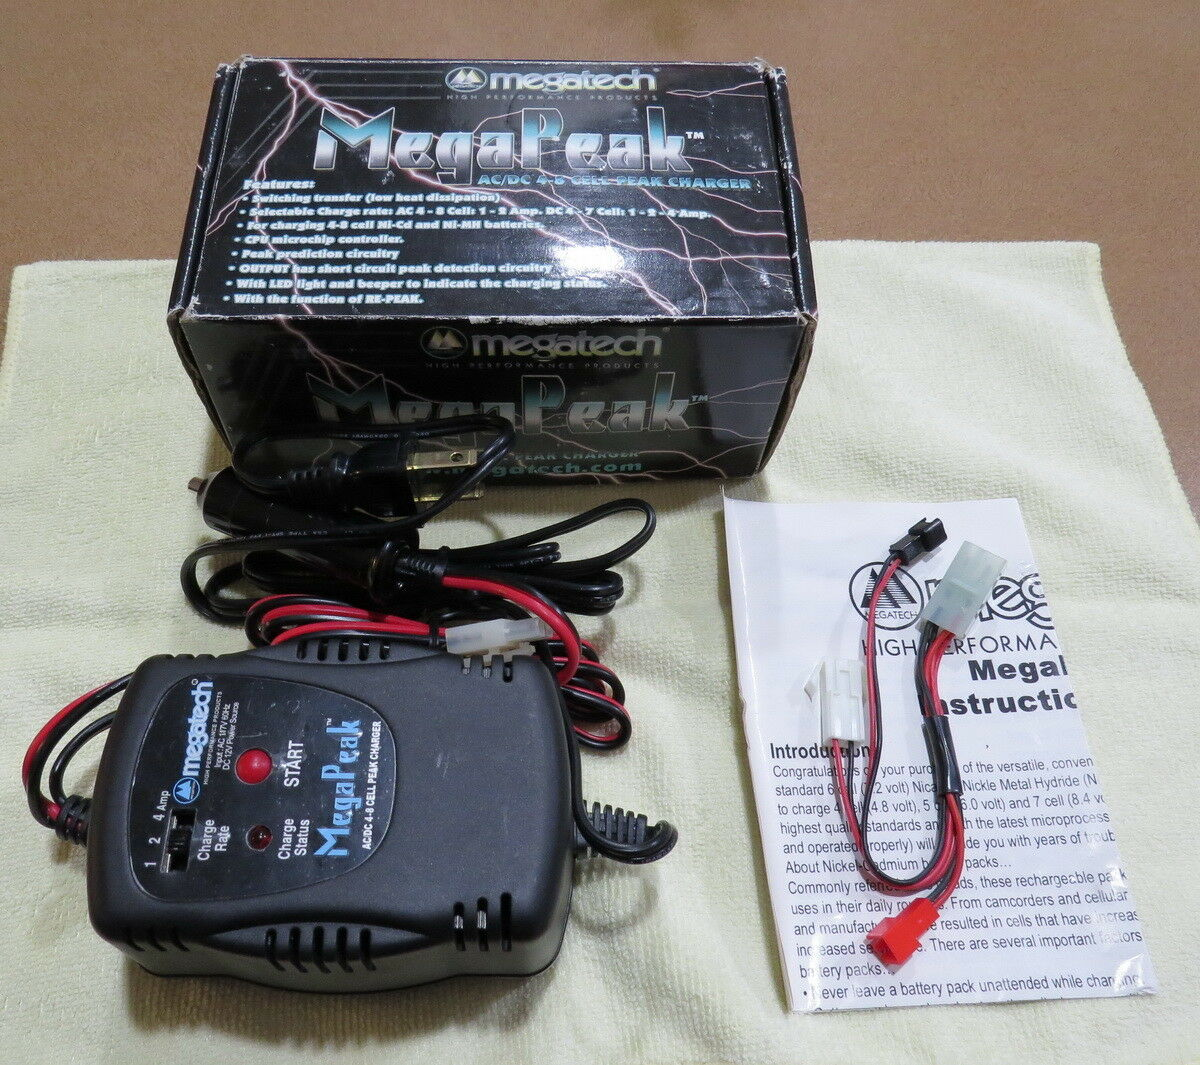 AC DC 4-8 4-8 4-8 CELL NiCd NiMh Peak Charger - Losi - Associated - Traxxas - Tamiya ff1f0d